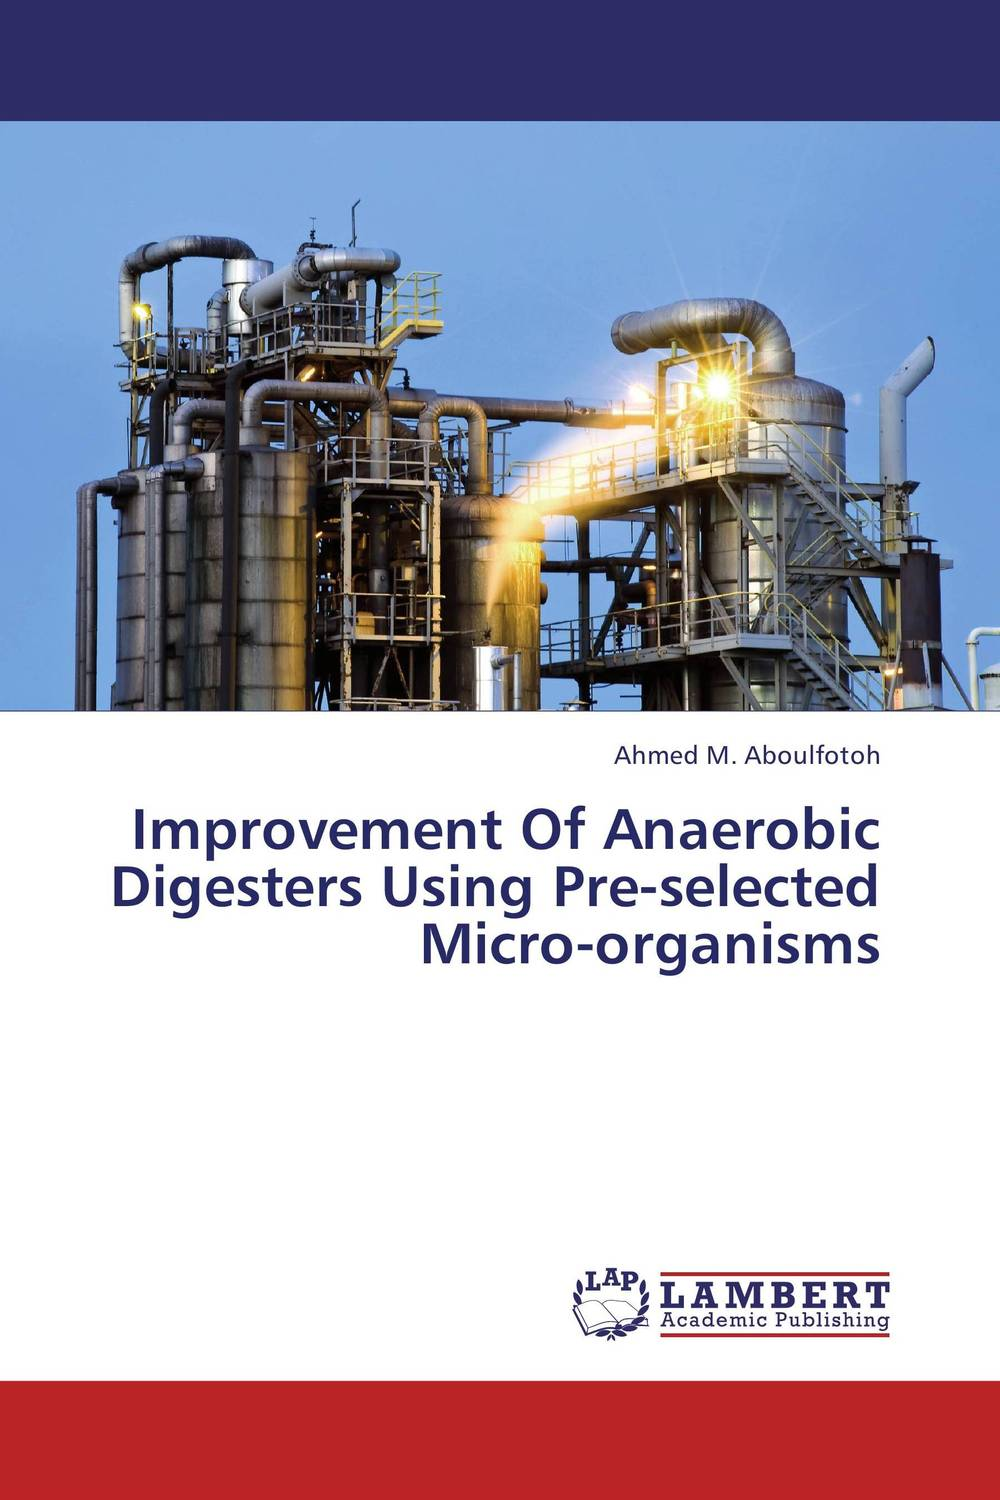 Improvement Of Anaerobic Digesters Using Pre-selected Micro-organisms vidstar vss 4p4 60 vss 4p4 m0 60